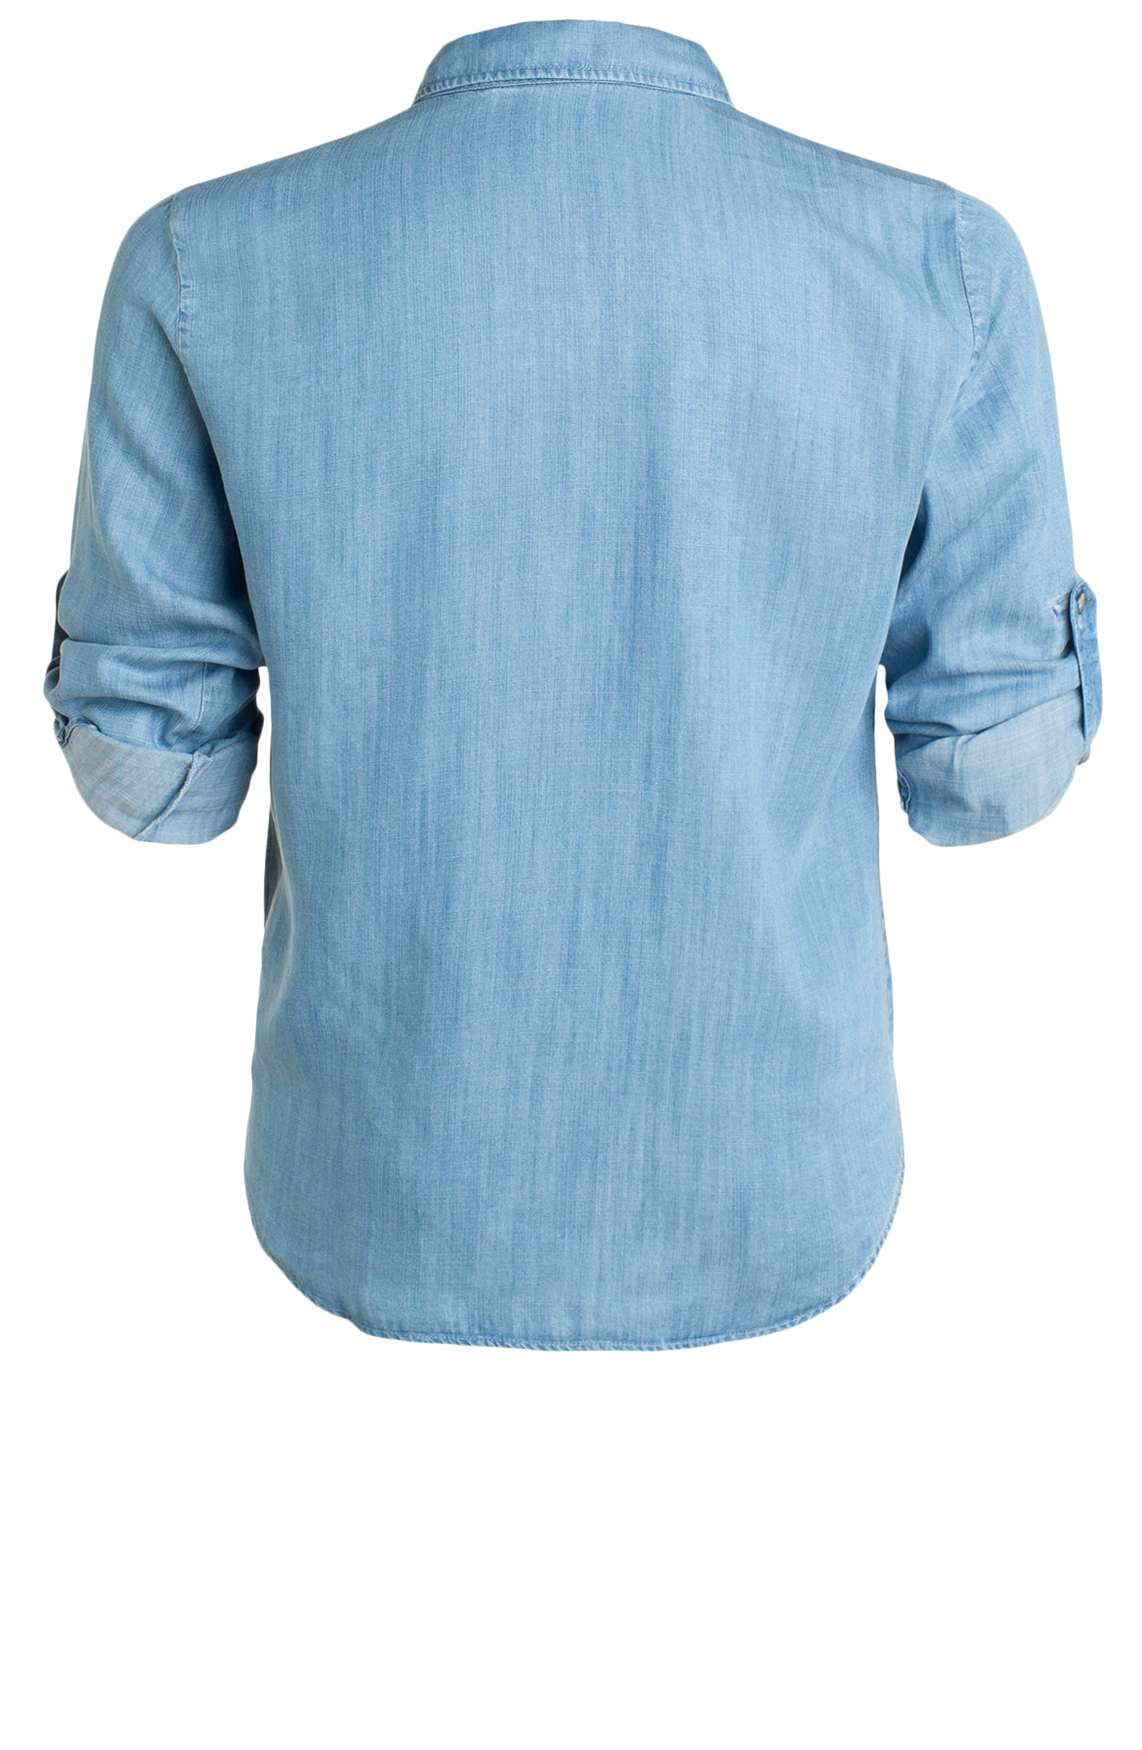 Moscow Dames Jeans blouse Blauw